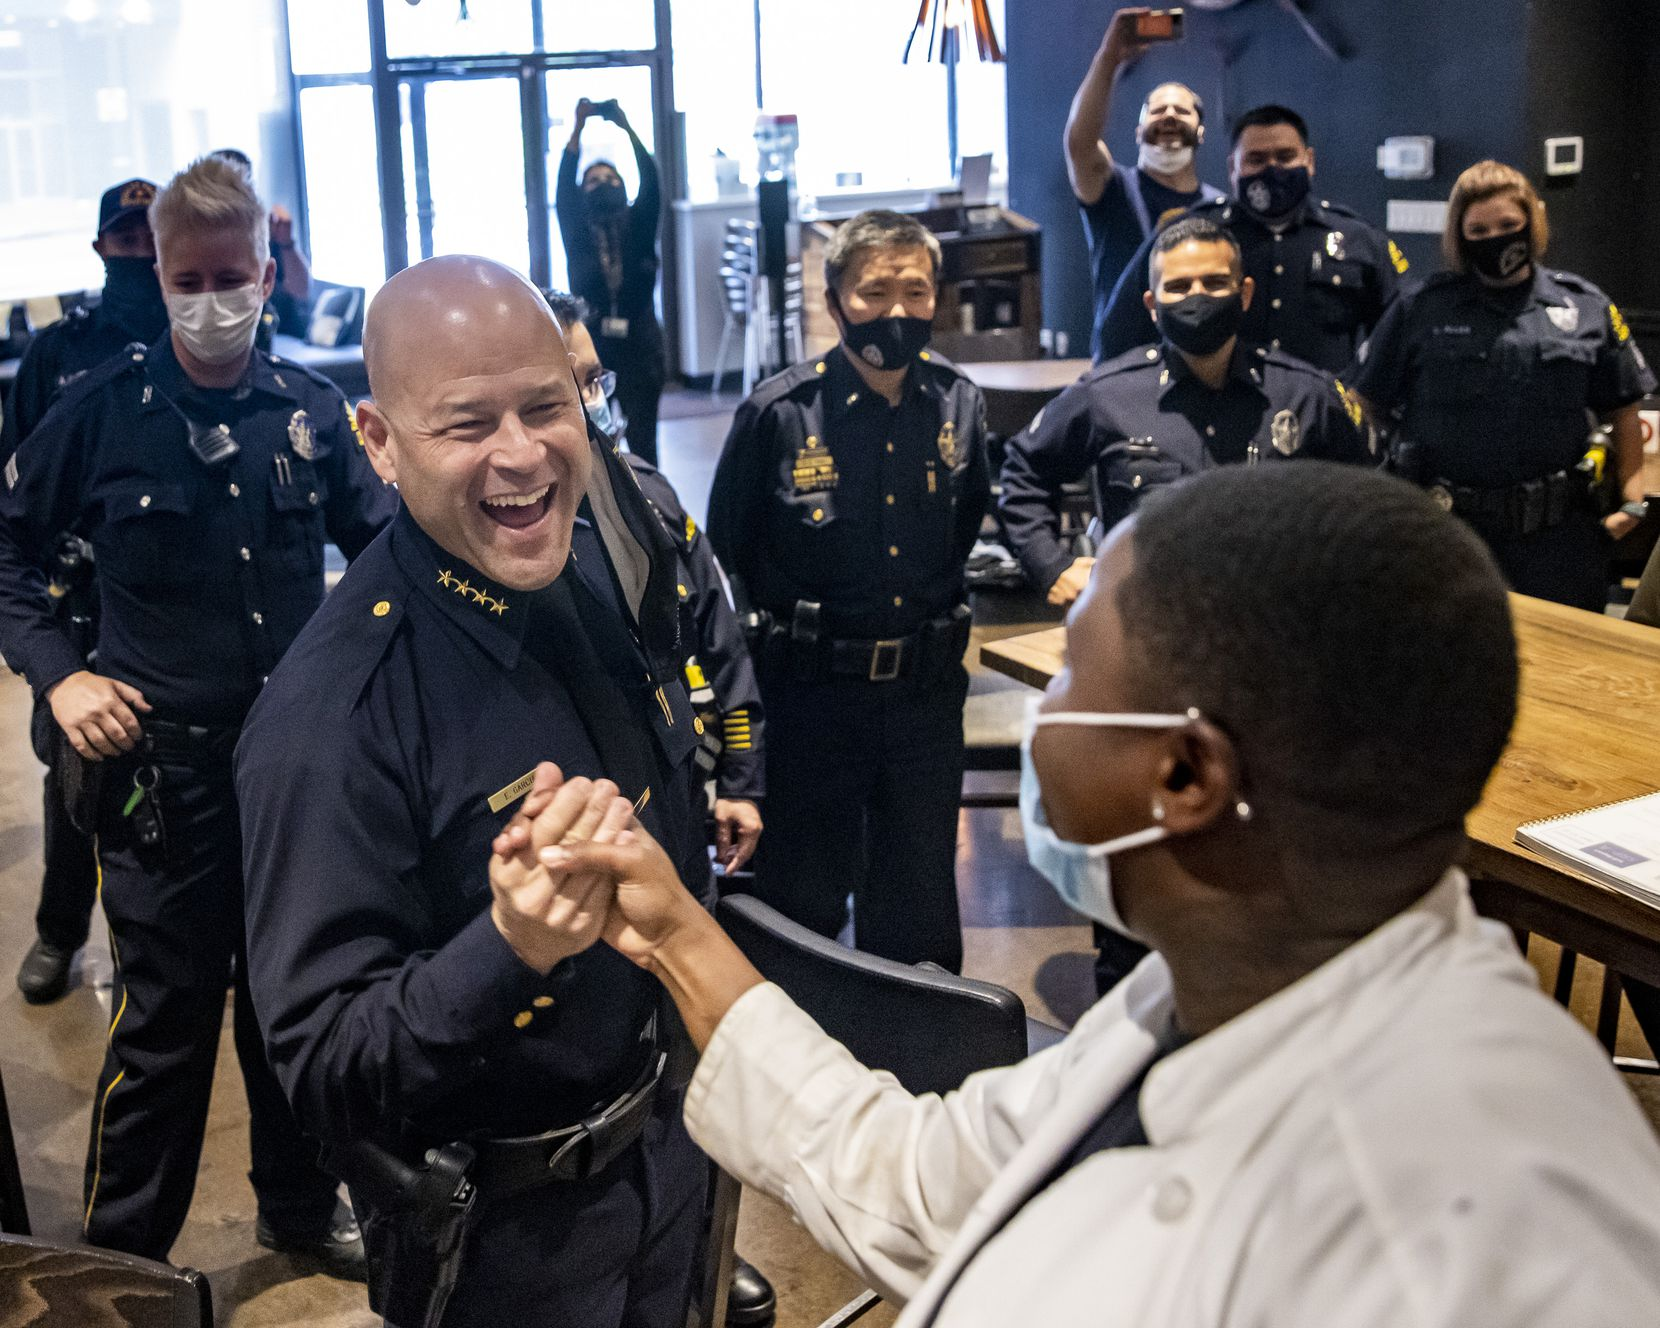 """Dallas Police Chief Eddie García — aka """"the dish-washing guy"""" — surprises intern Keanna Adams at Cafe Momentum in downtown Dallas on May 18. Dallas police officers revealed themselves after they spent a shift incognito as volunteers working with the restaurant's interns. (Lynda M. González/The Dallas Morning News)"""